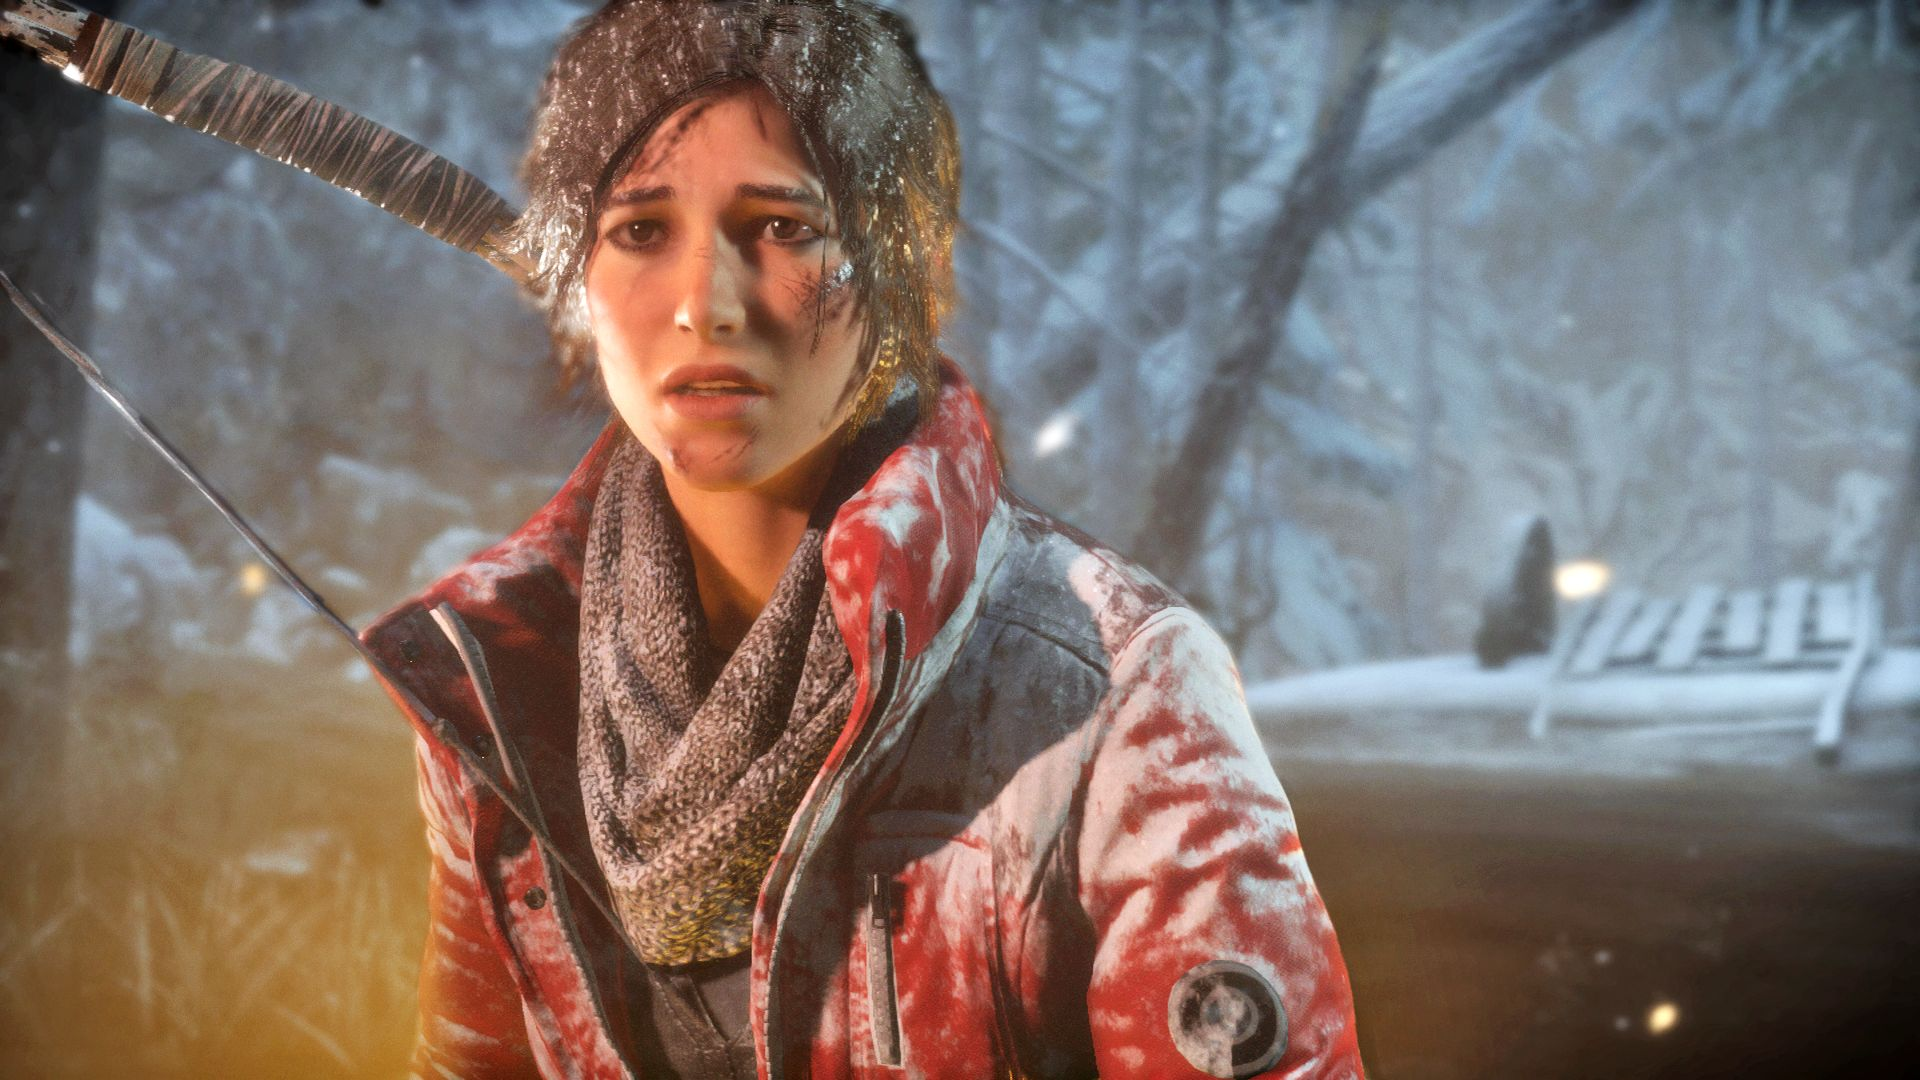 Pirate claims to have cracked Rise of the Tomb Raider's DRM